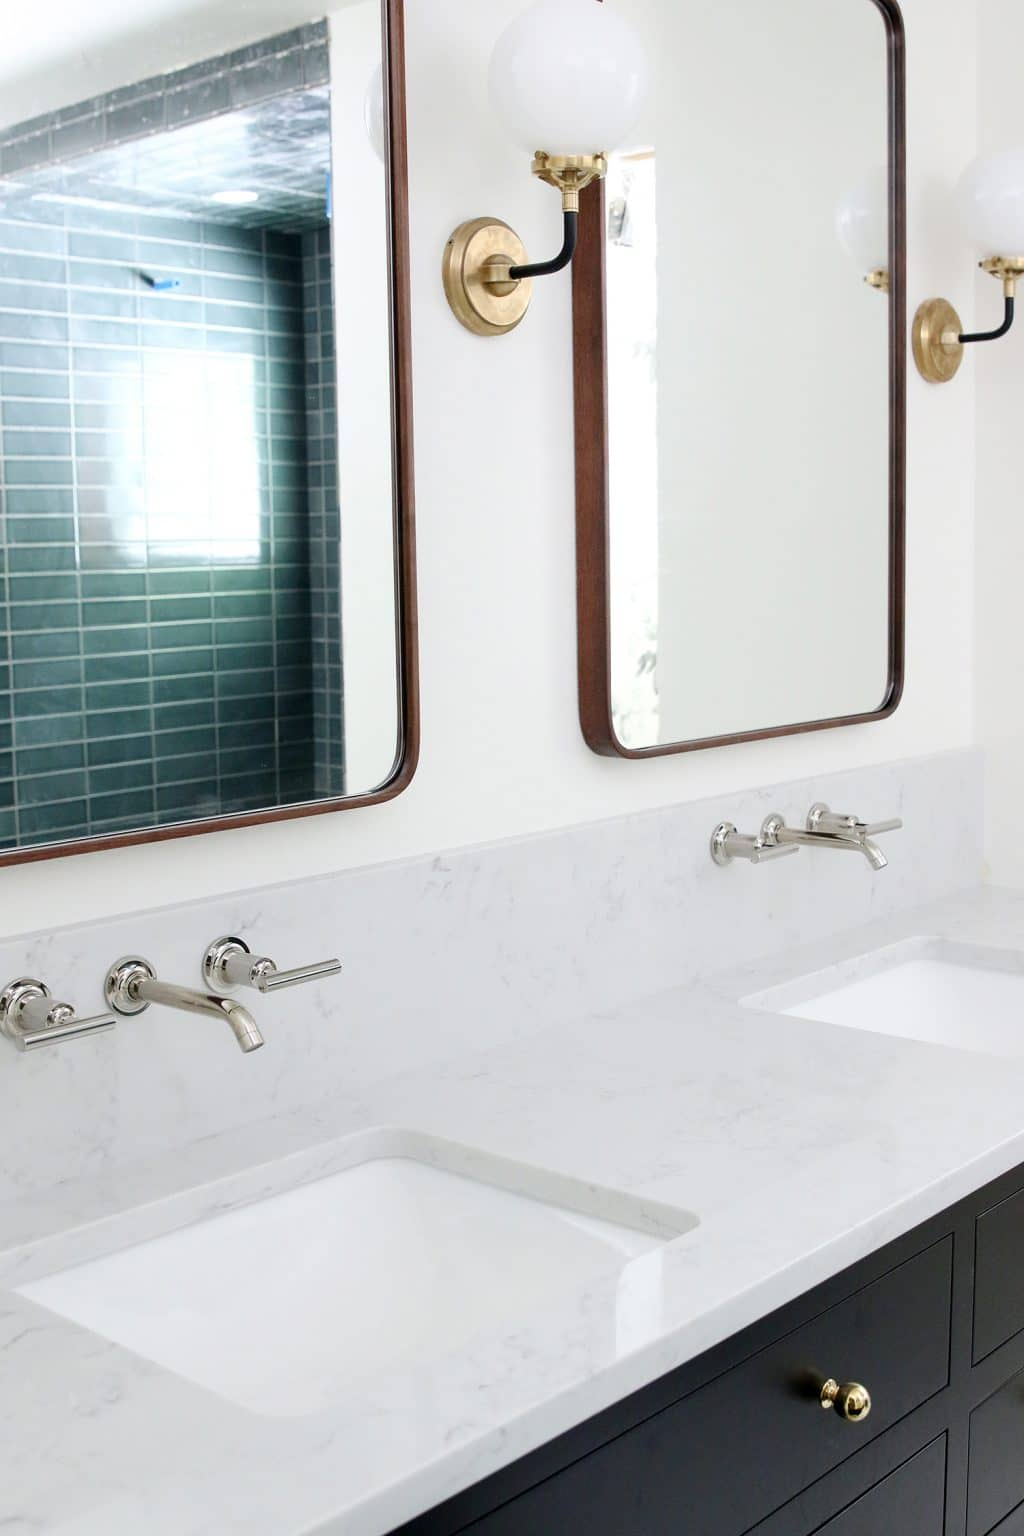 Our Undermount Bathroom Sink & Wall-Mount Faucets Installed - Chris ...